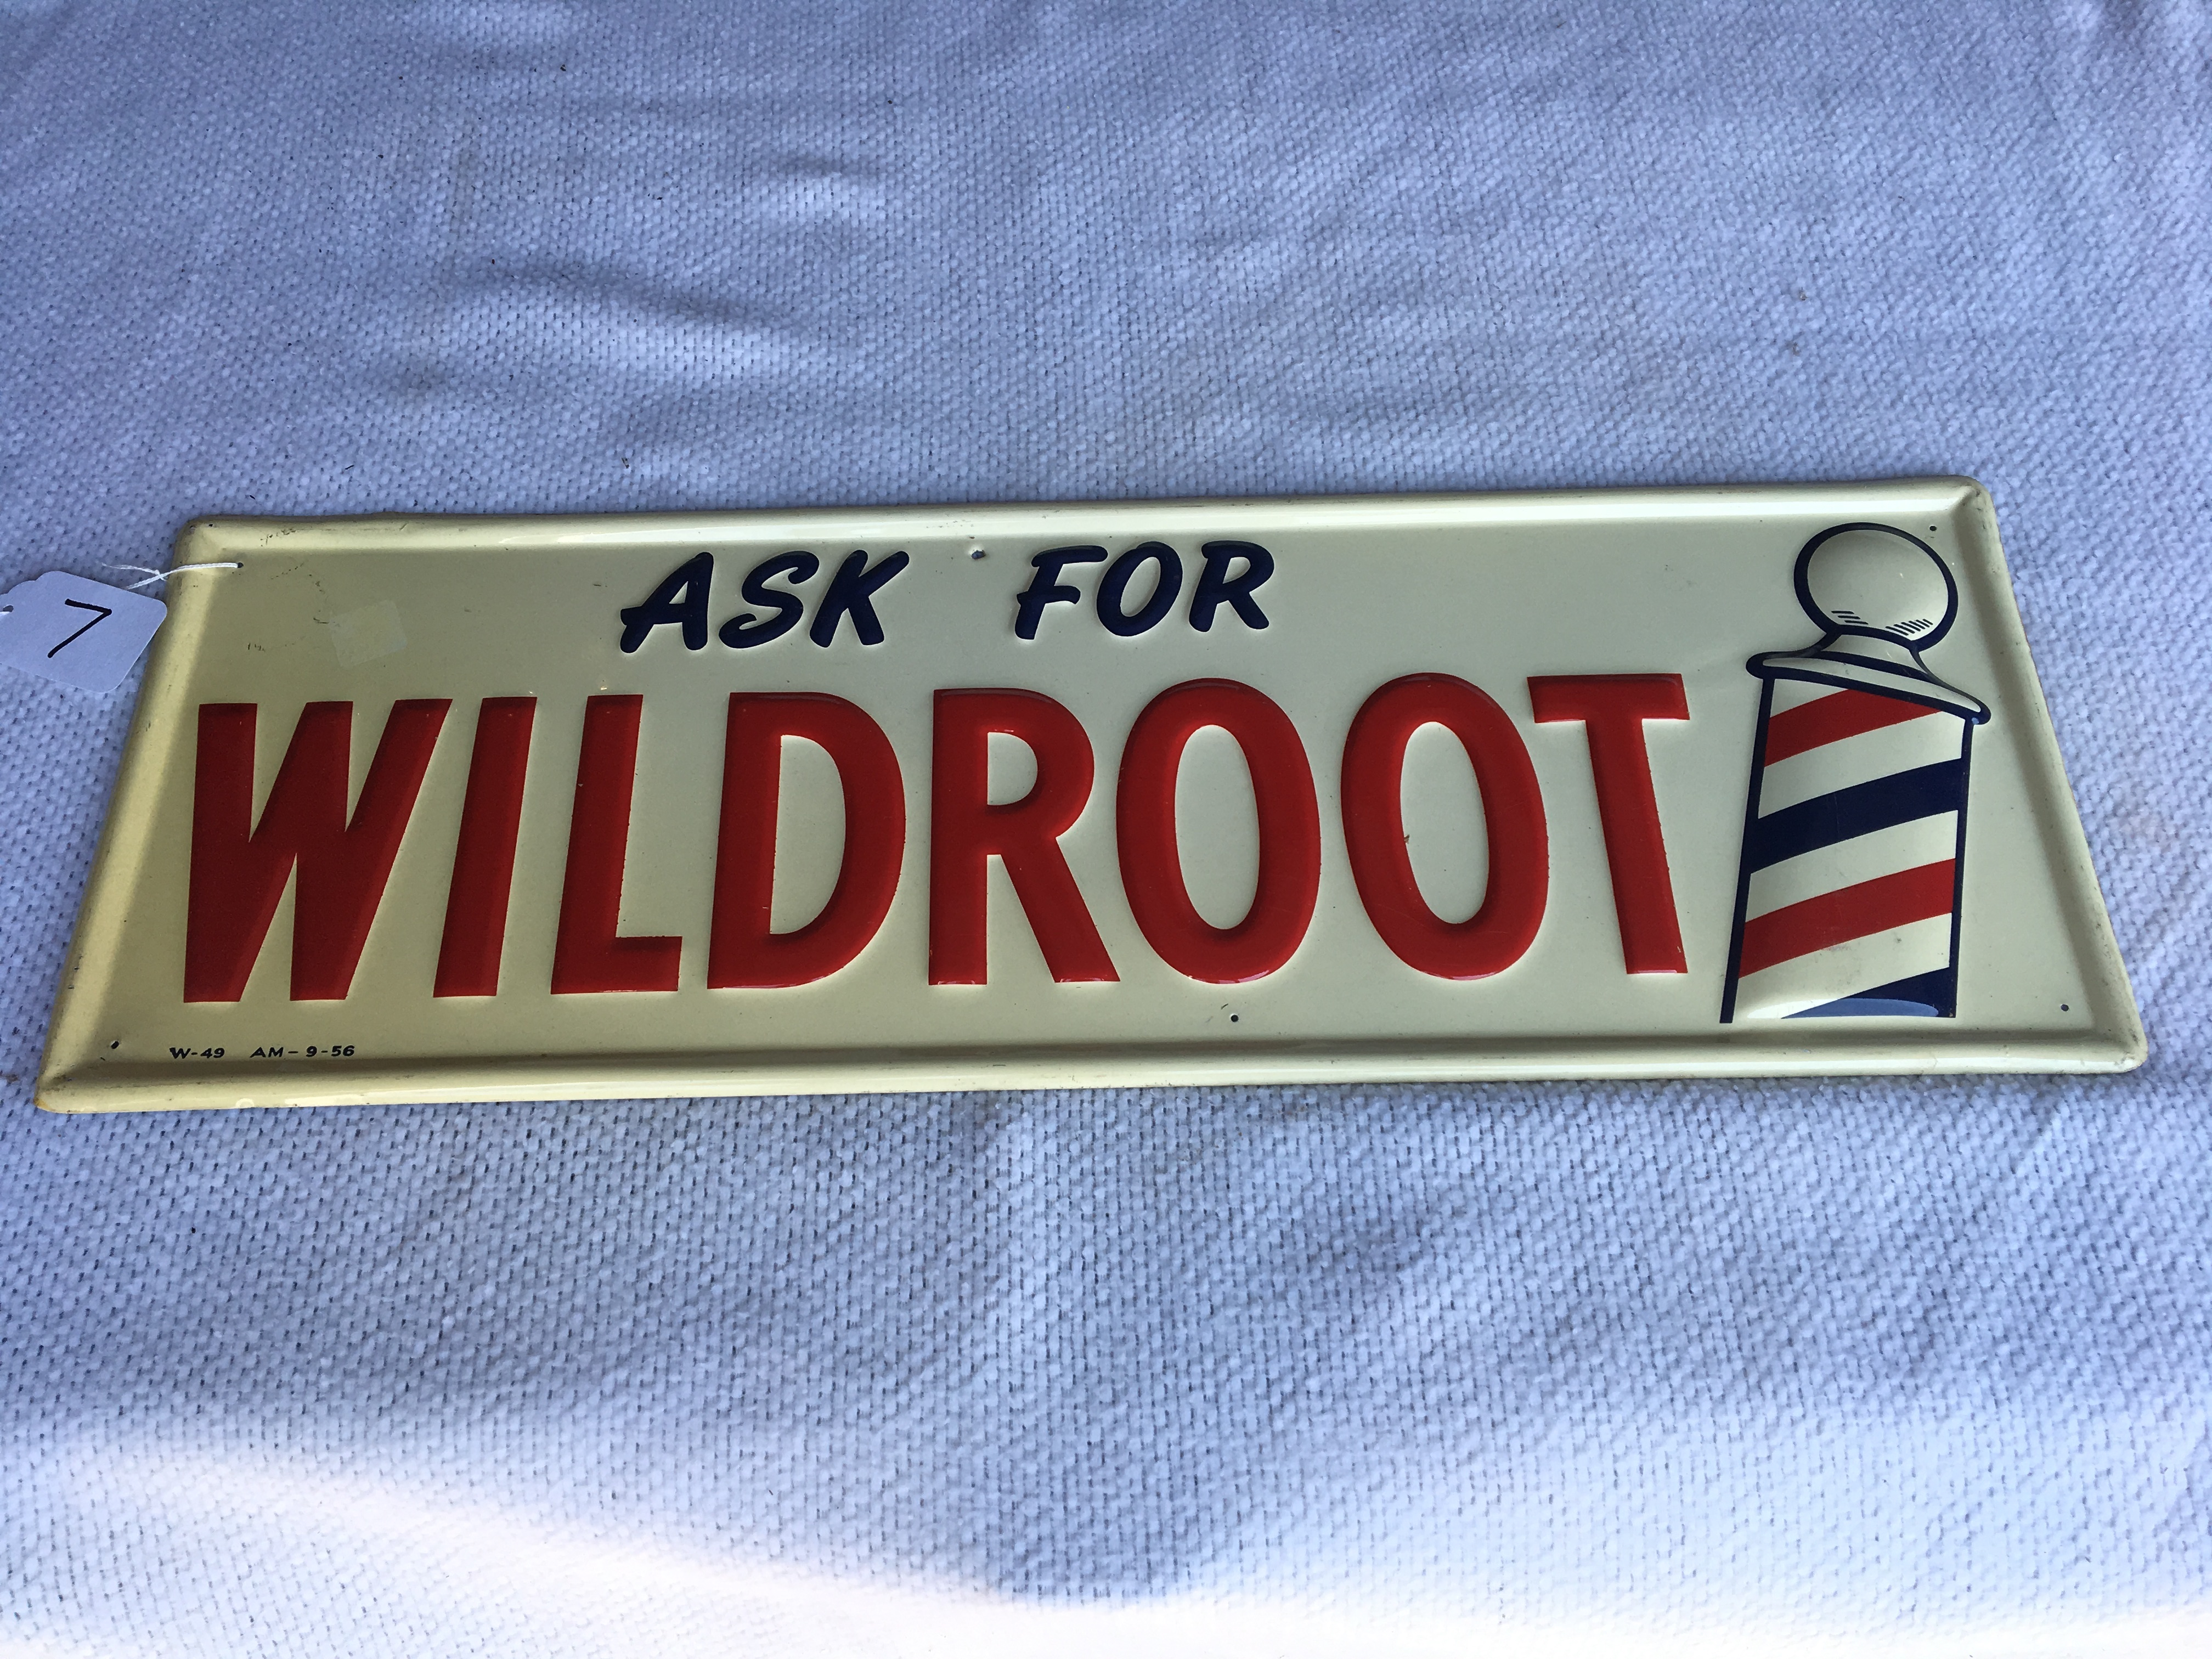 """Lot 7 - Ask for Wildroot Metal Sign, 9 ¾"""" x 27 ¾"""", (W-49) (AM-9-56)"""